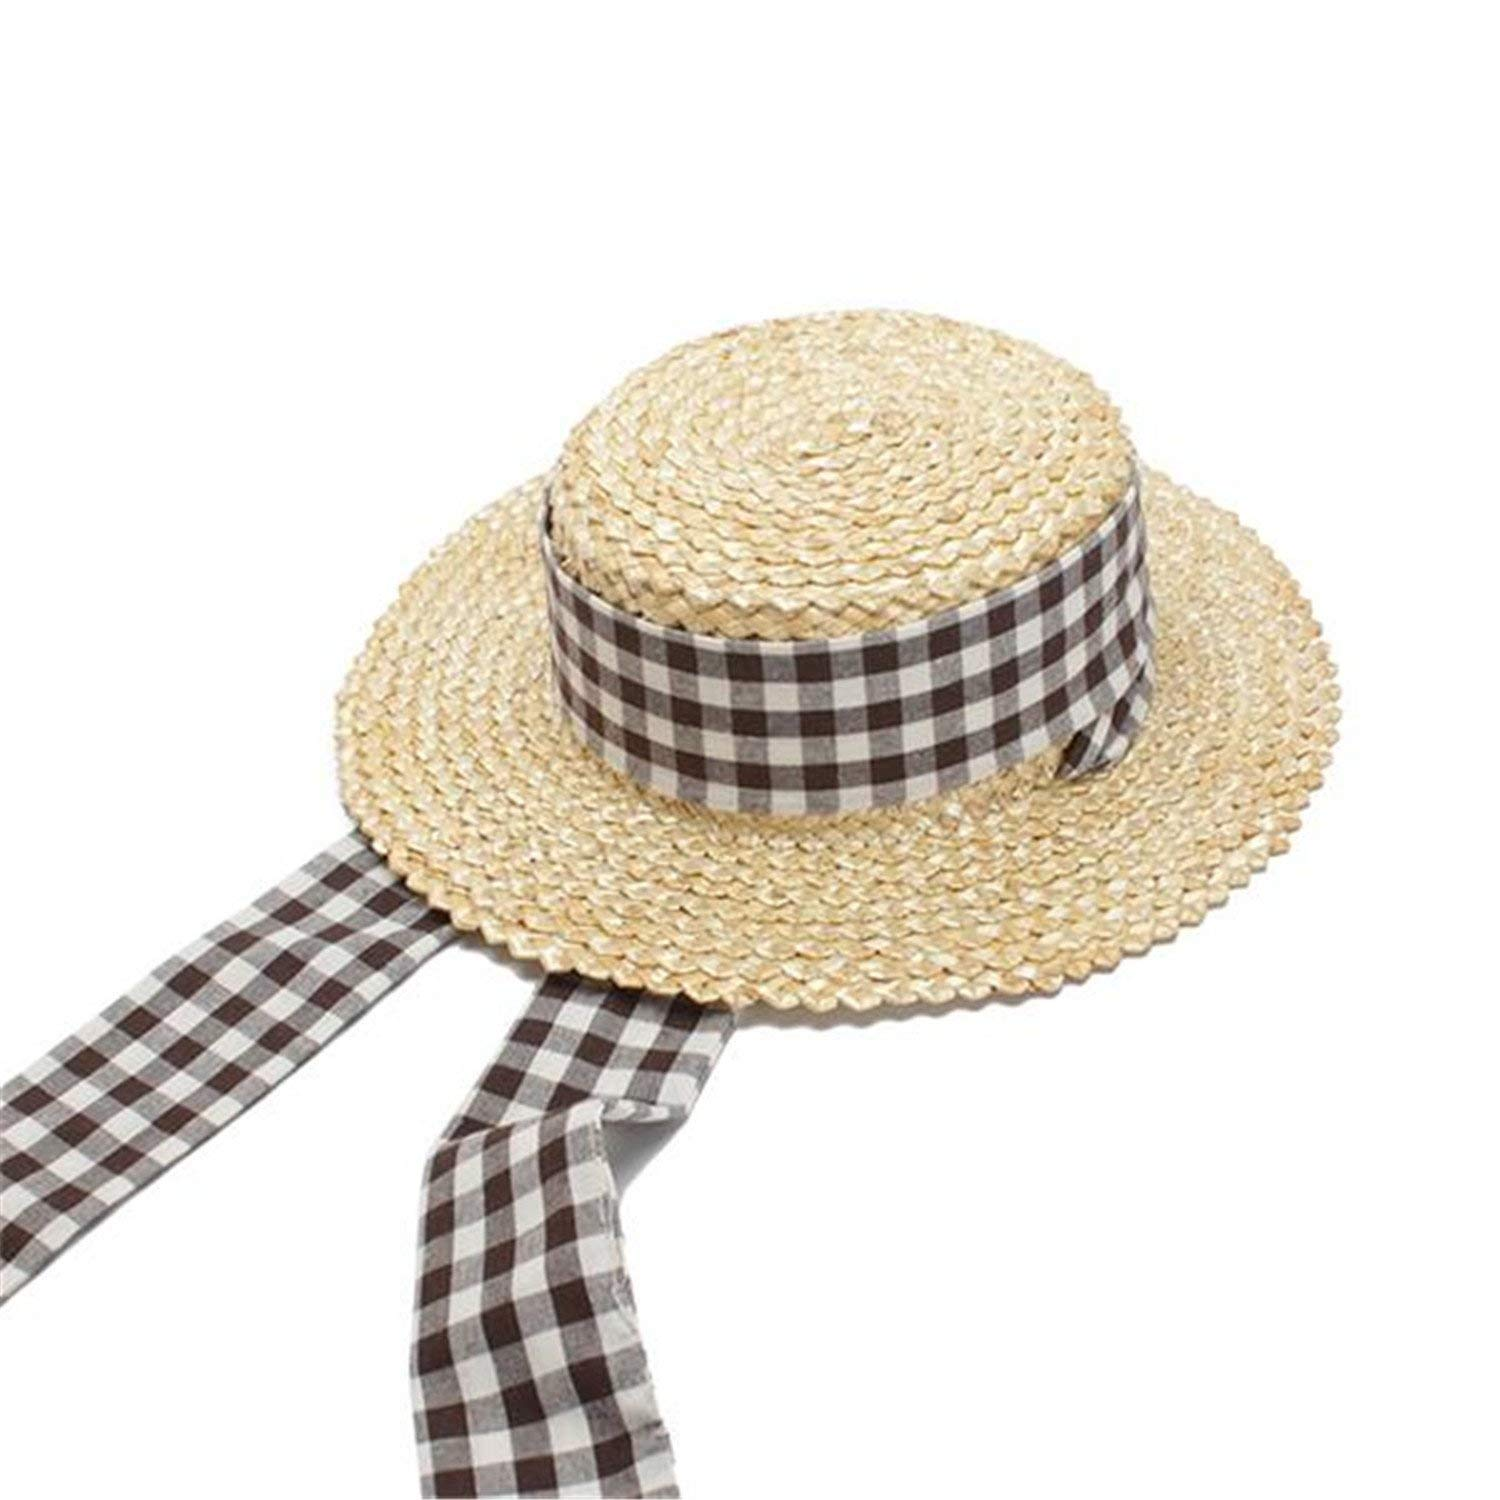 08f4a366bf516 Get Quotations · Women Straw Hats New Summer Boater Hat Ladies Flat Top  Beach Sun Hats with Plaid Belt